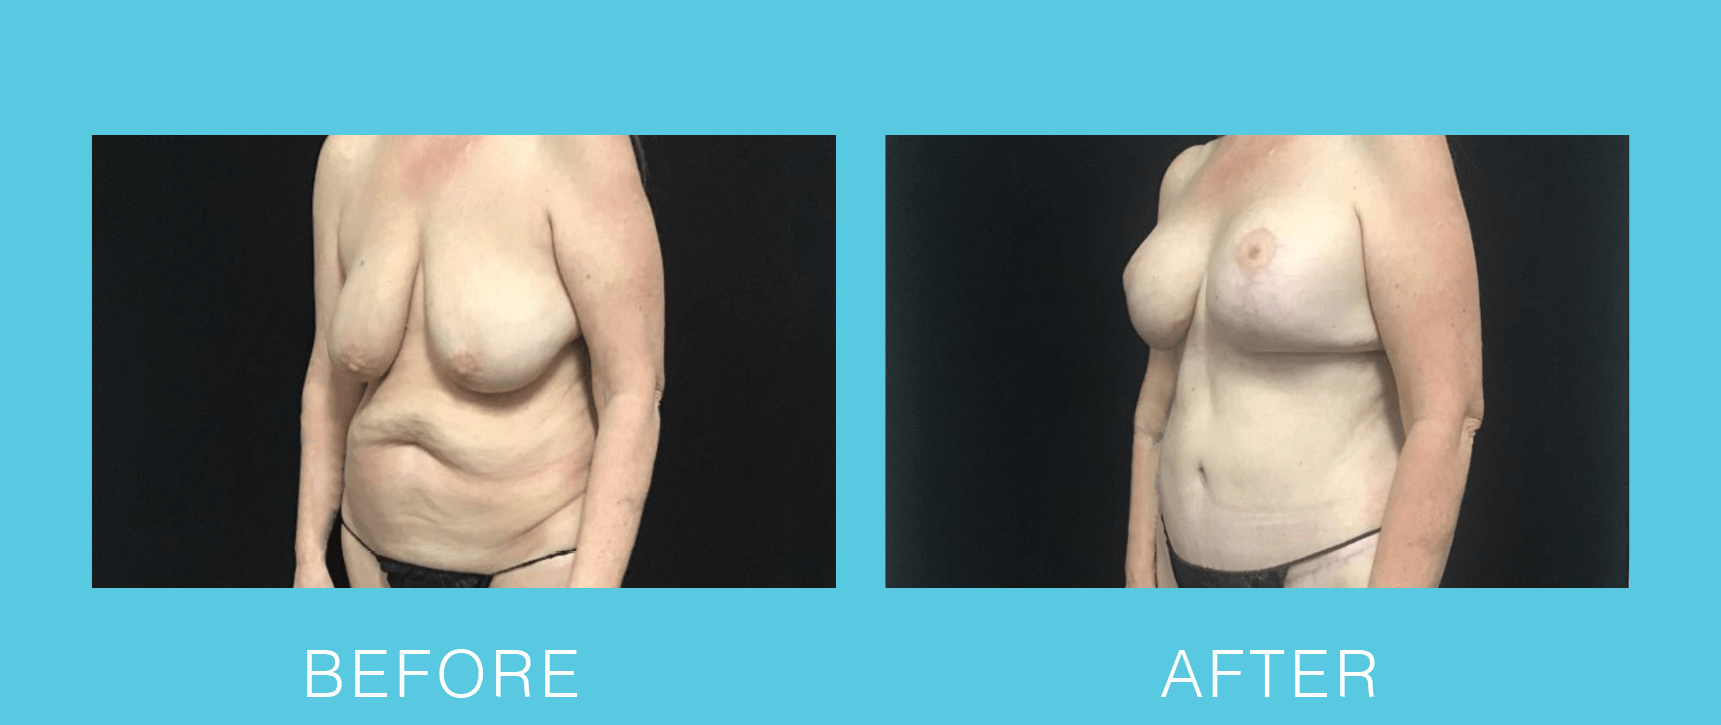 Breast Aug and Lift with Abdominoplasty